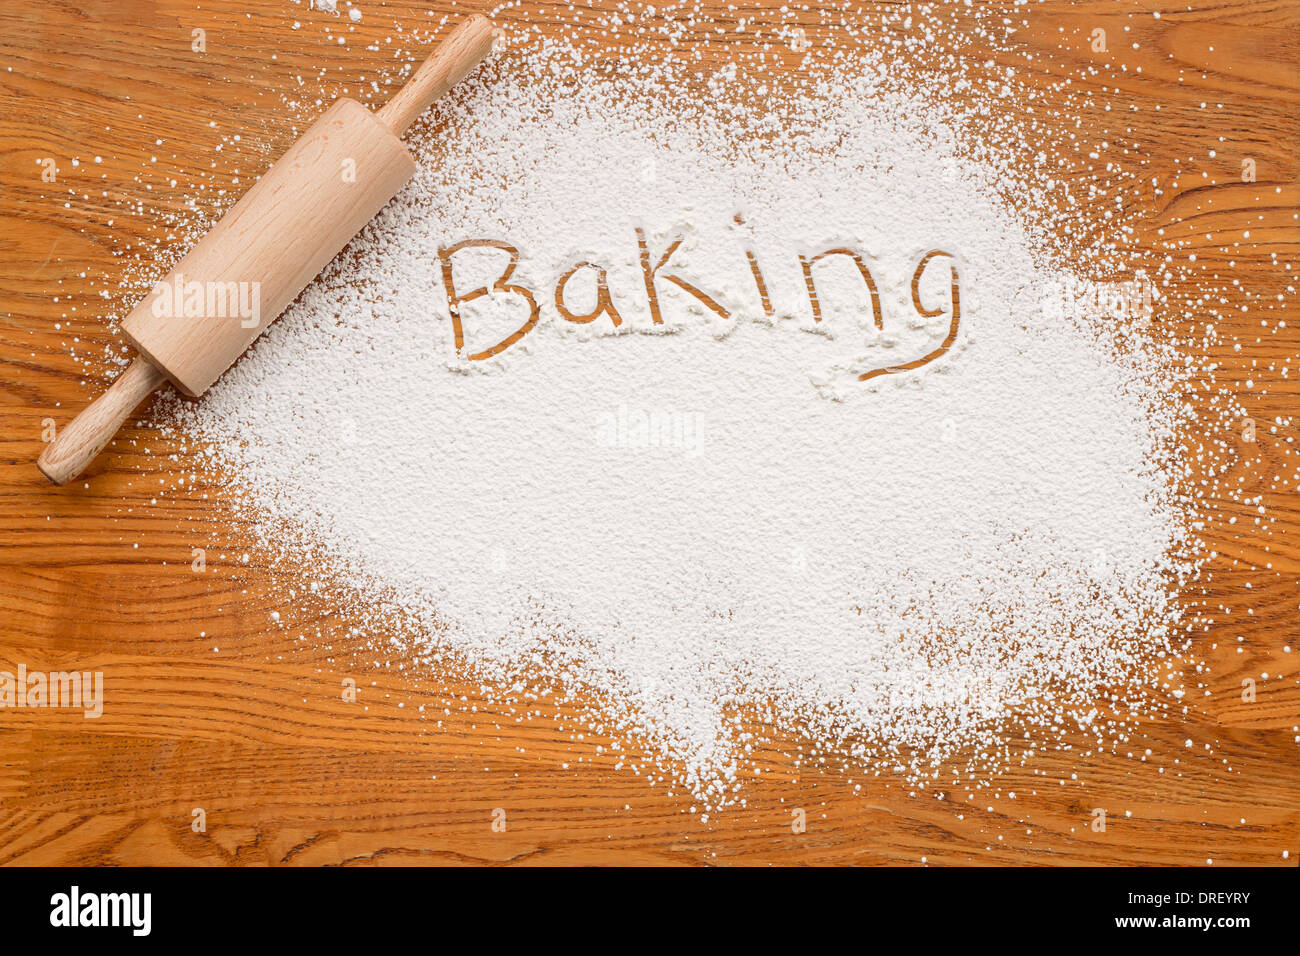 Flour on a wooden table symbolising a Bakery Baking Notice with white space for inclusion of text. - Stock Image